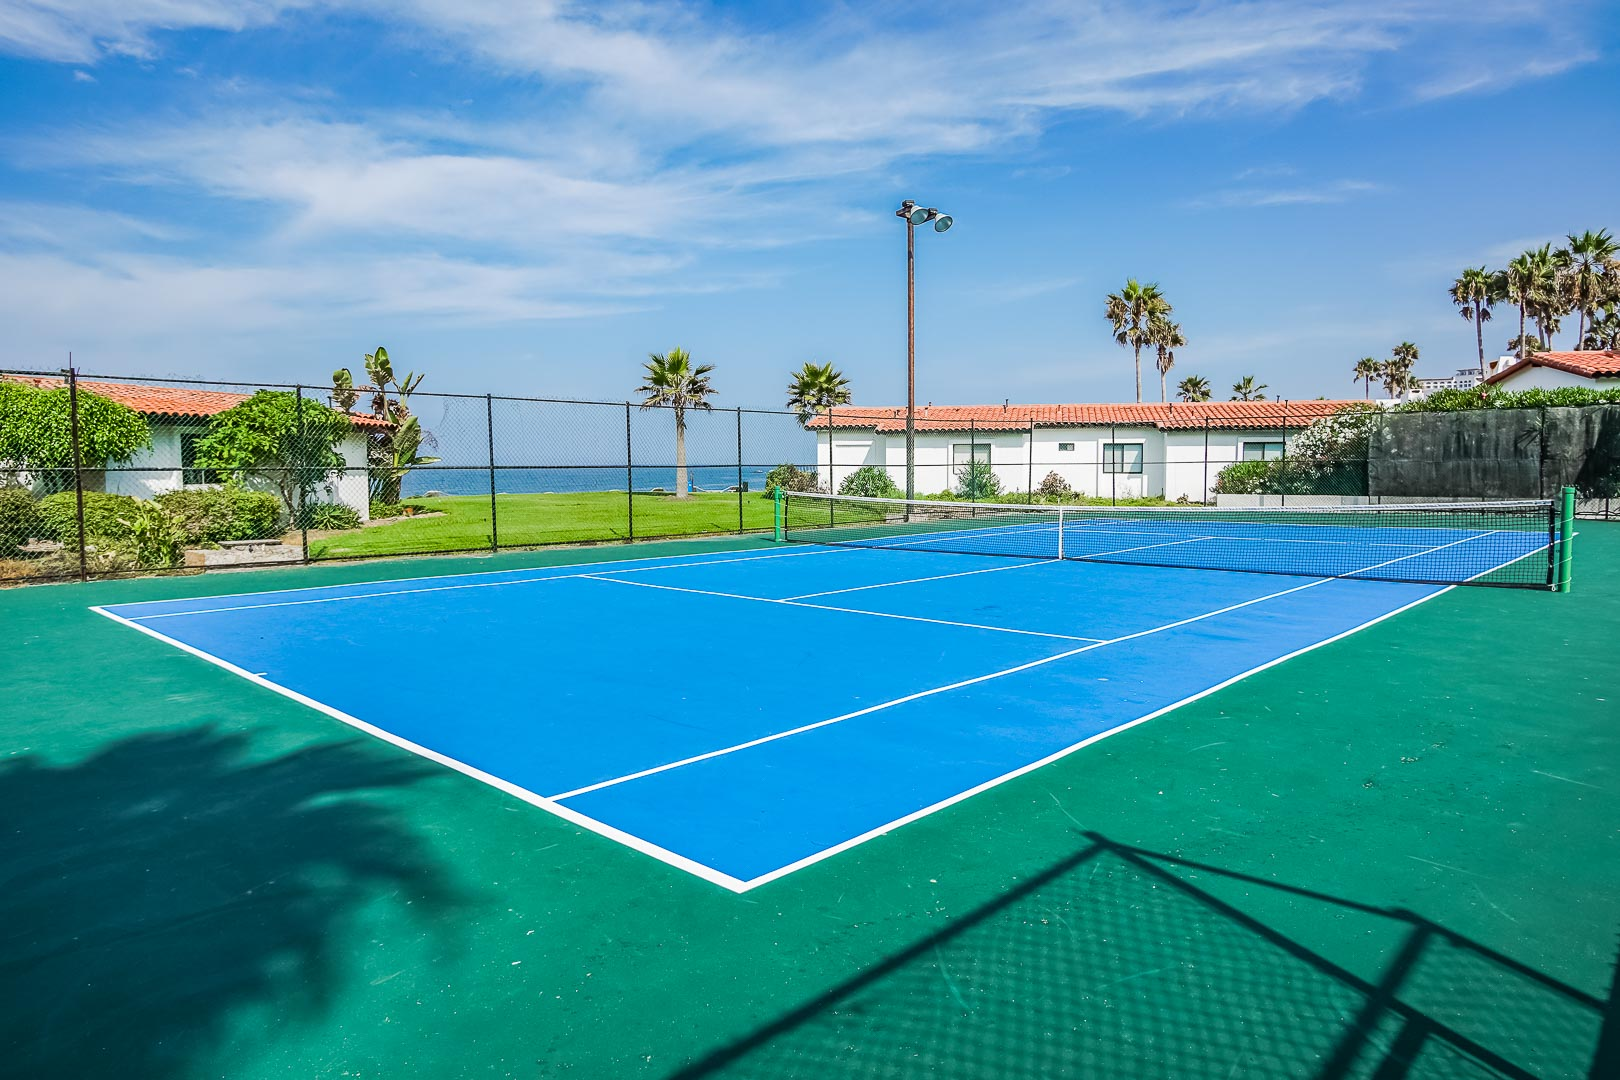 A vibrant tennis court by the beach A crisp outdoor swimming pool at VRI's La Paloma in Rosarito, Mexico.